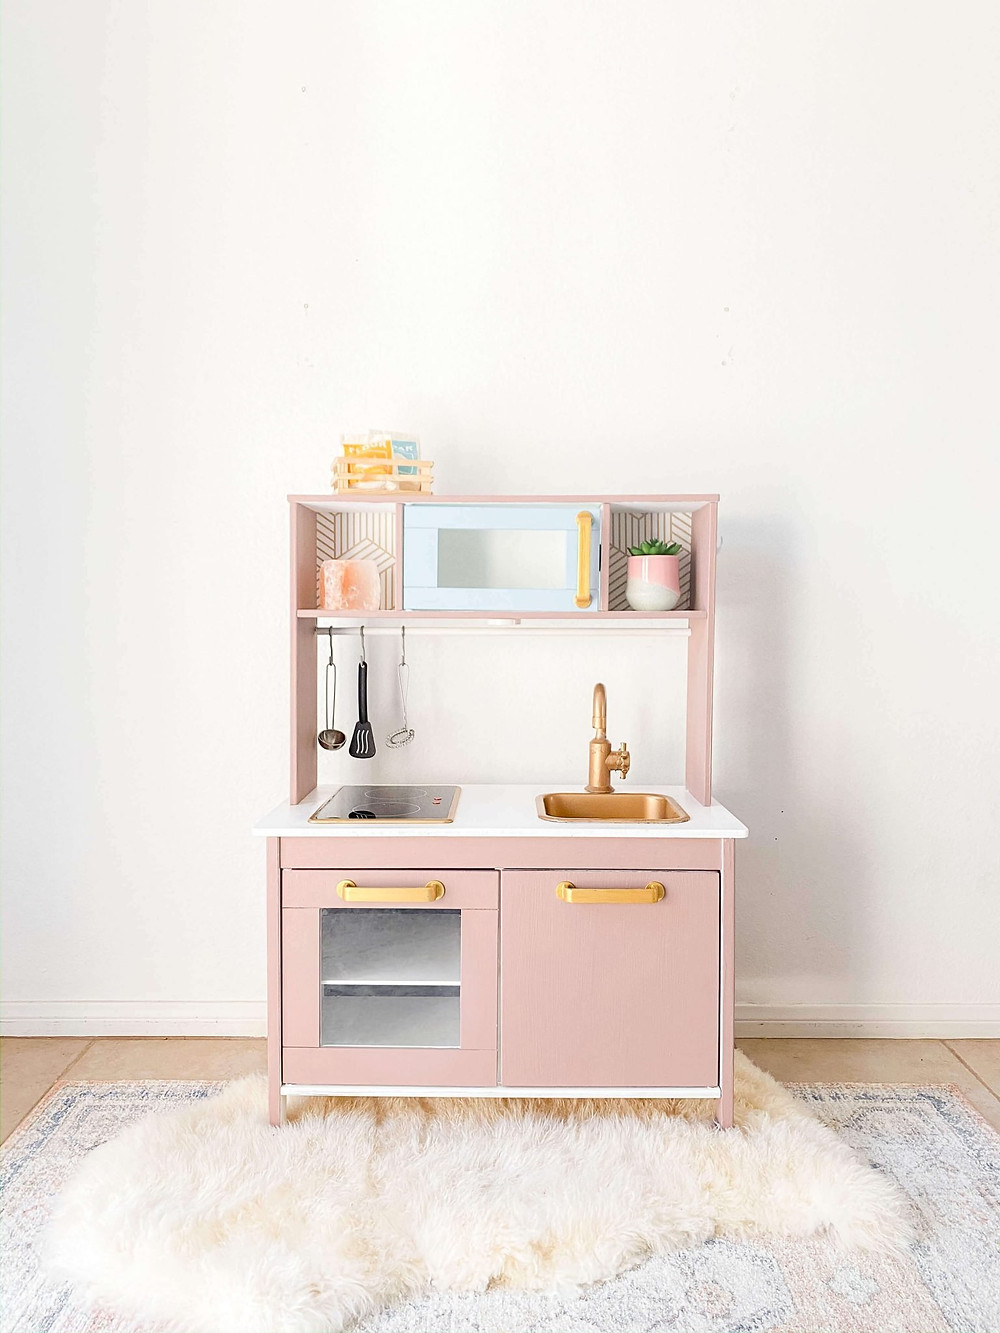 A little girls pink IKEA play kitchen in simple playroom against white wall on hardwood floor with furry area rug